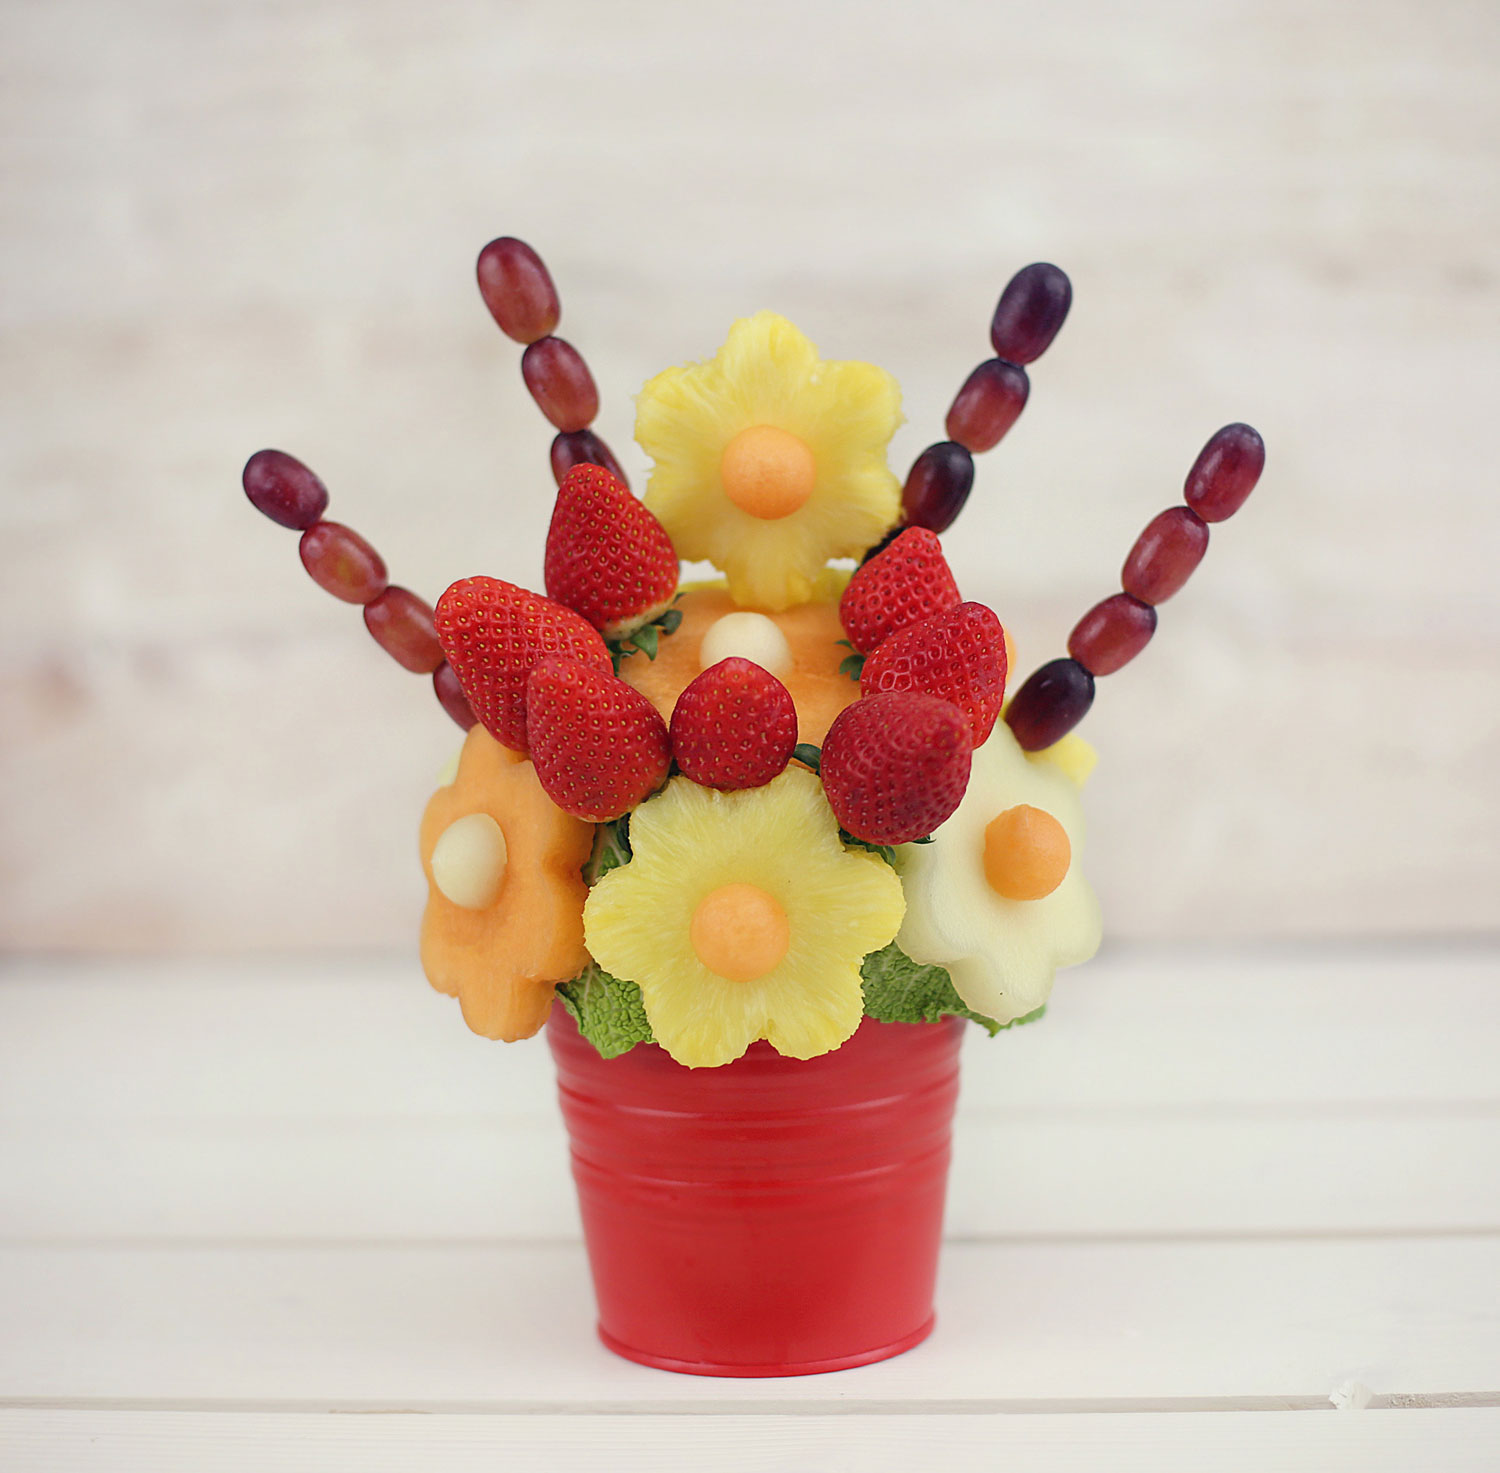 Fruit Arrangements Related Keywords & Suggestions Fruit Arrangements Lo